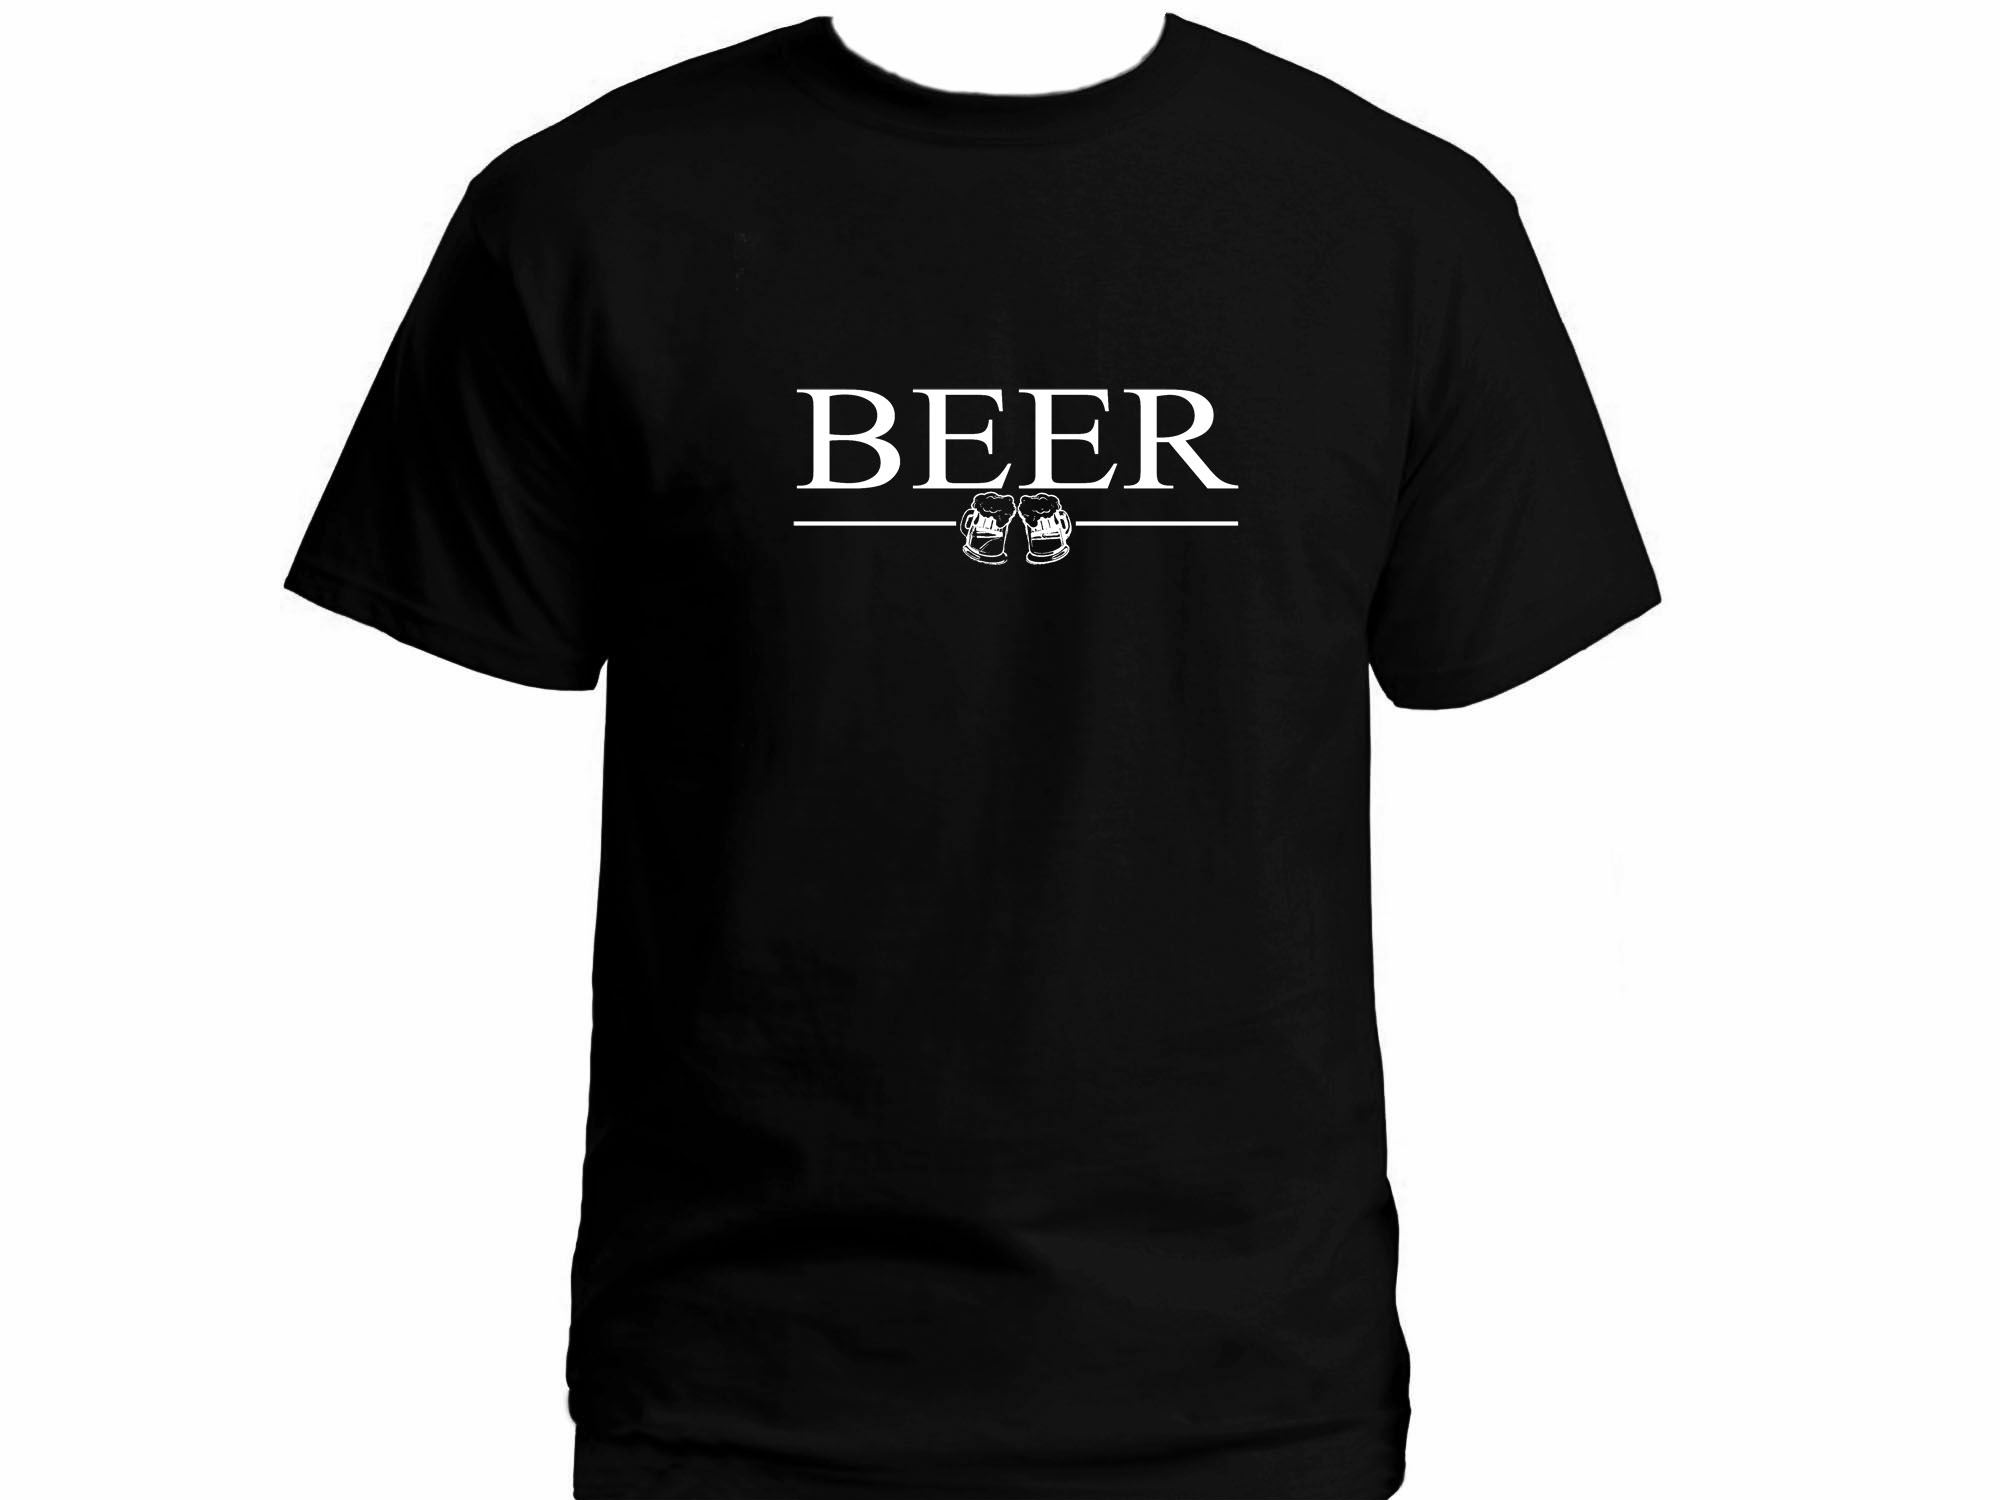 Beer t-shirts,hoodies,tank tops - My Cool T-Shirt